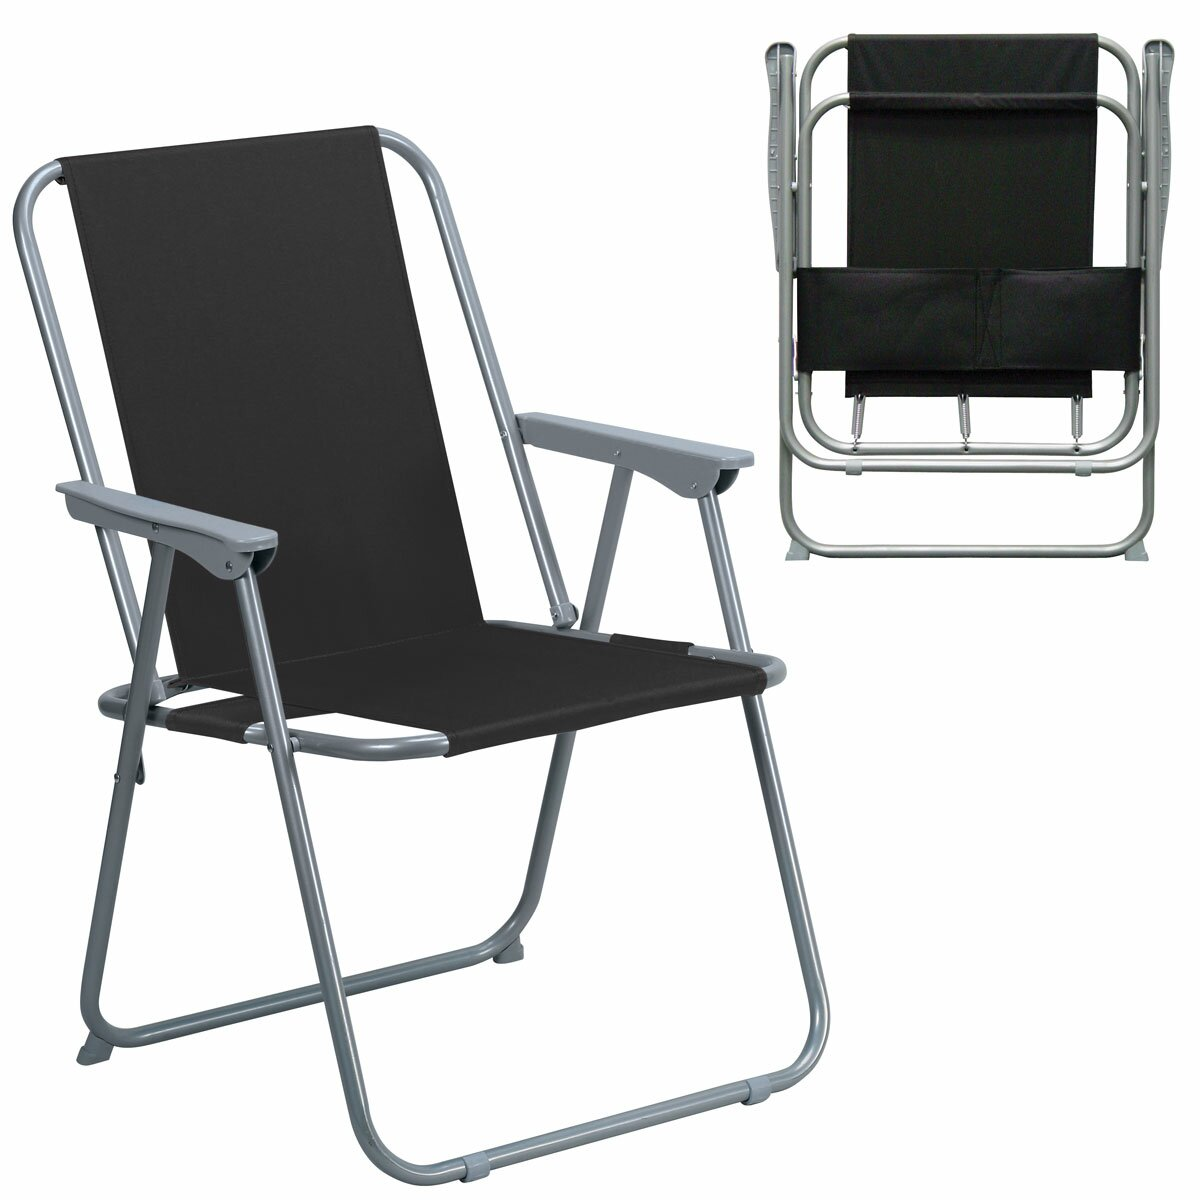 Preferred nation beach chair reviews for Furniture nation